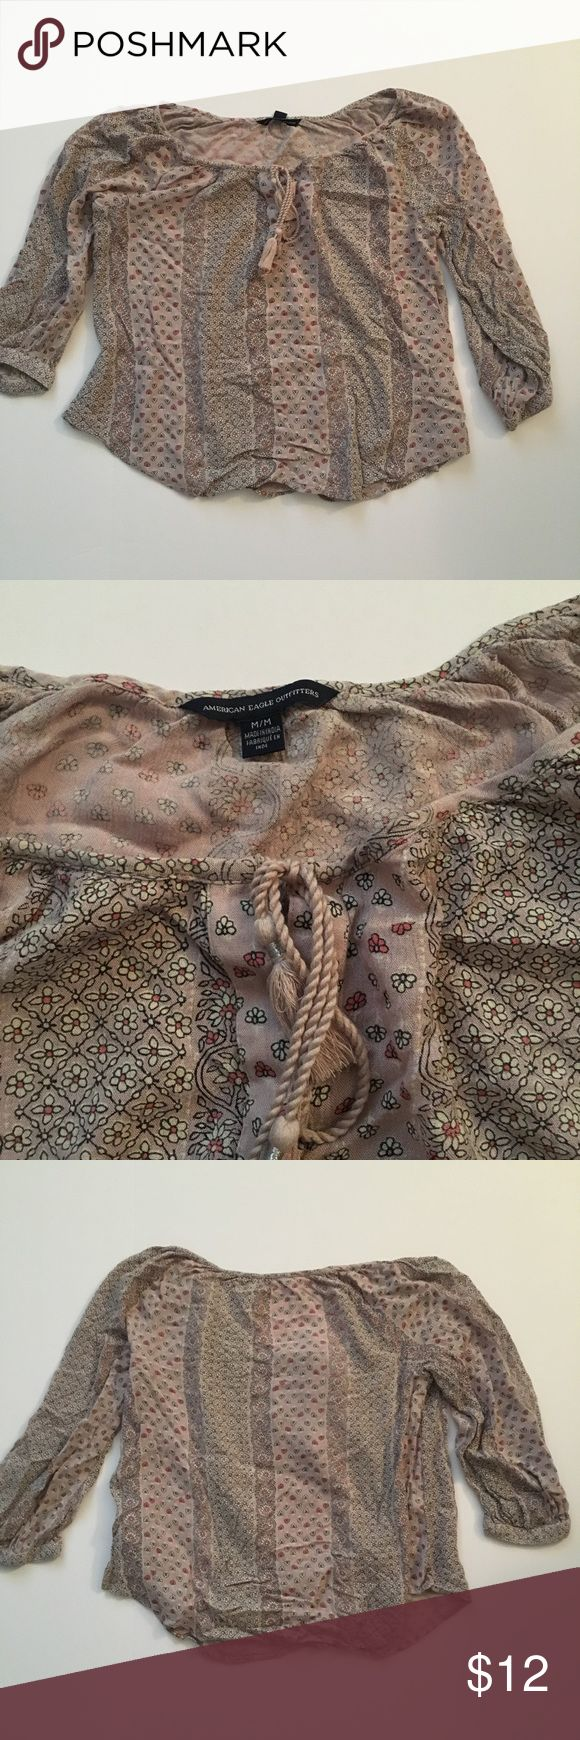 American eagle boho blouse •American Eagle Boho Blouse. Tassal tie in front  •100% viscose  •Size:Medium  •All Items checked for stains, holes, and excessive wear: If no issues noted then item is in very good condition!  •Comes from smoke free home •Have cats: all items come freshly laundered but a few hair might be on clothing. •Original retail: $40 •Open to offers •Bundle discounts available •Ships within 24 hours of purchasing, will communicate if not able to ship in that time •Feel free…